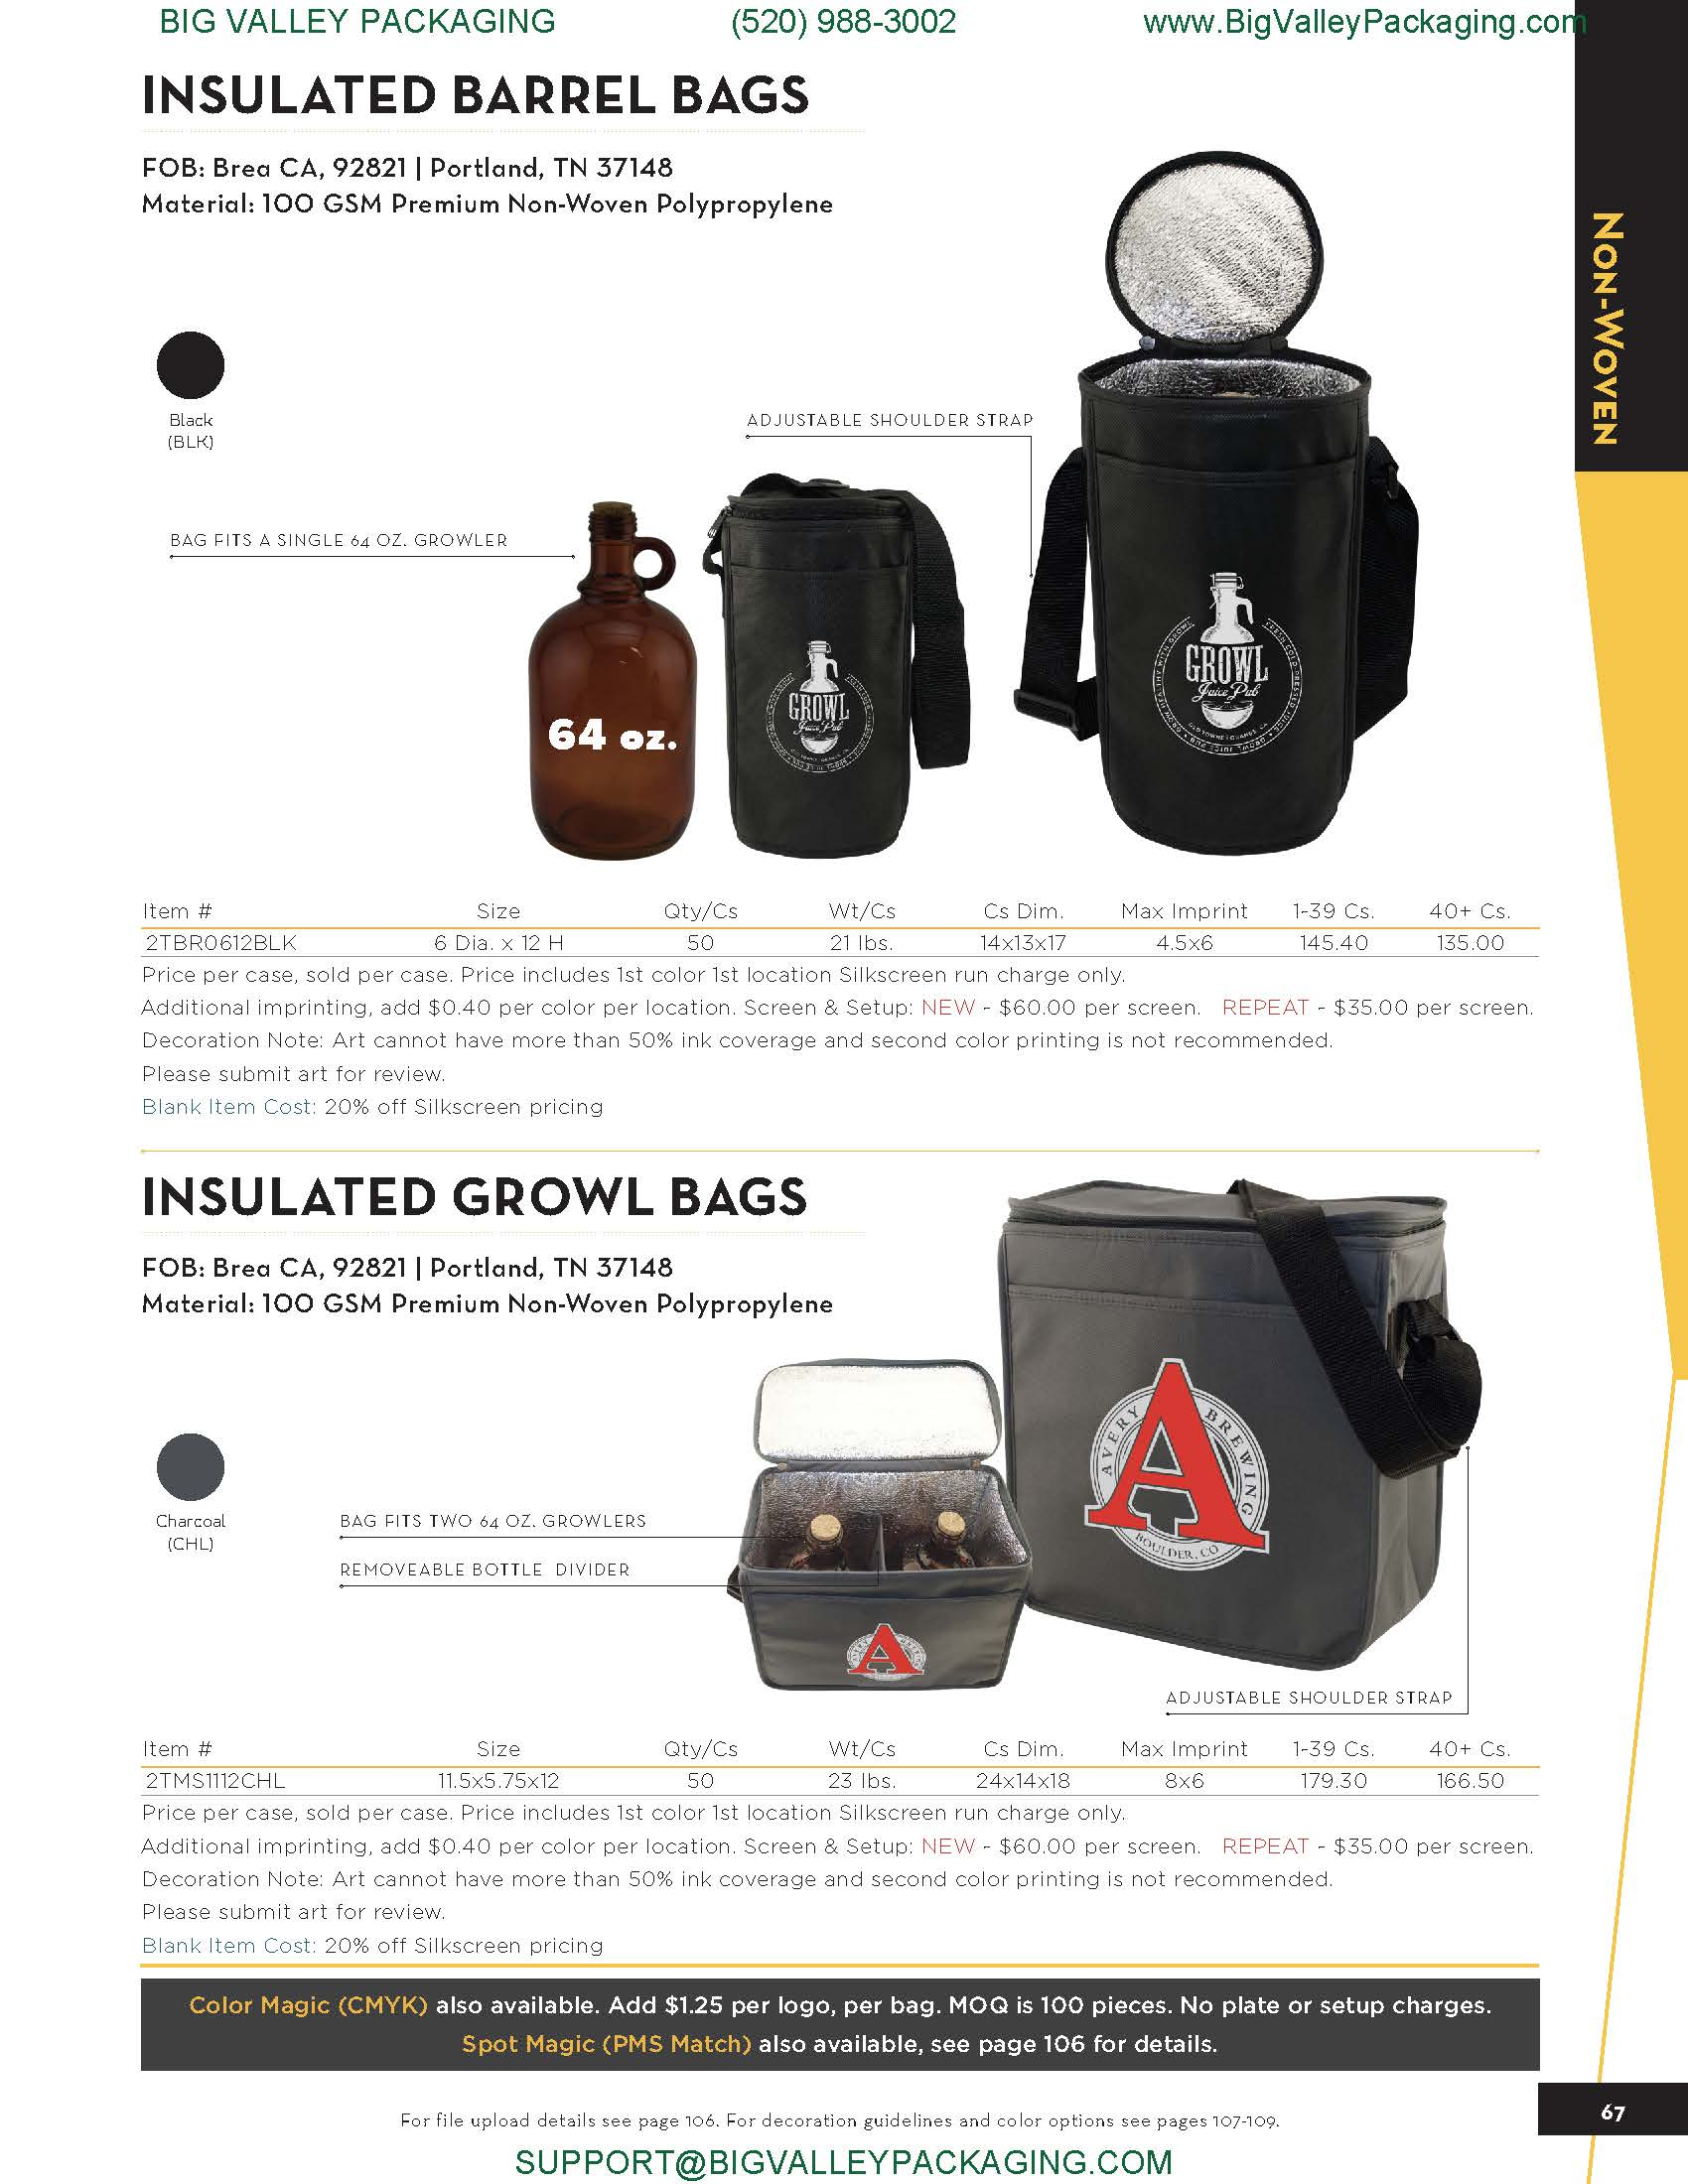 INSULATED BARREL GLASS BOTTLE BAGS